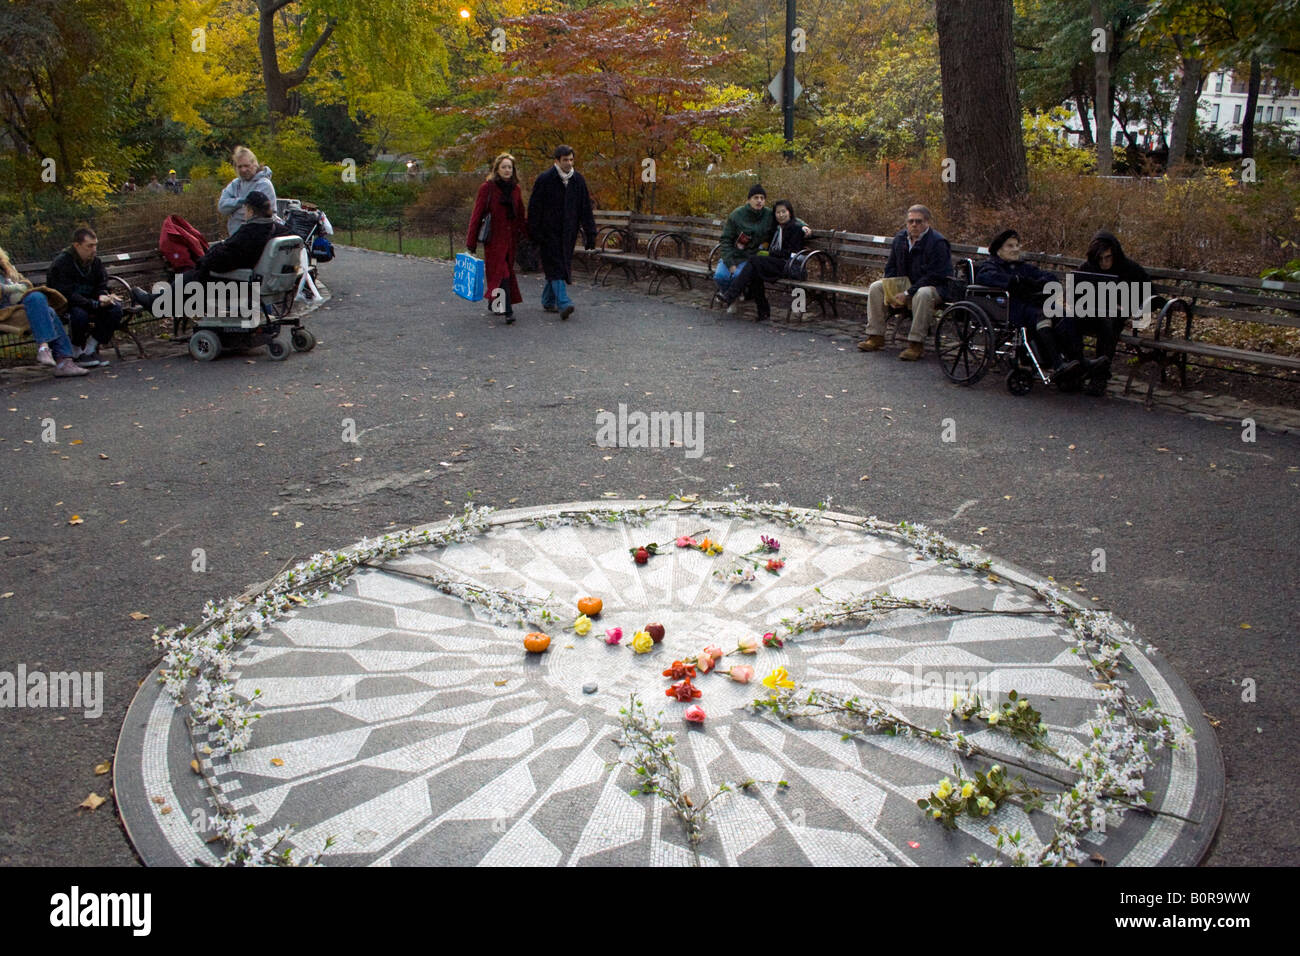 Imagine the memorial to John Lennon in Strawberry Fields Central Park New York City - Stock Image